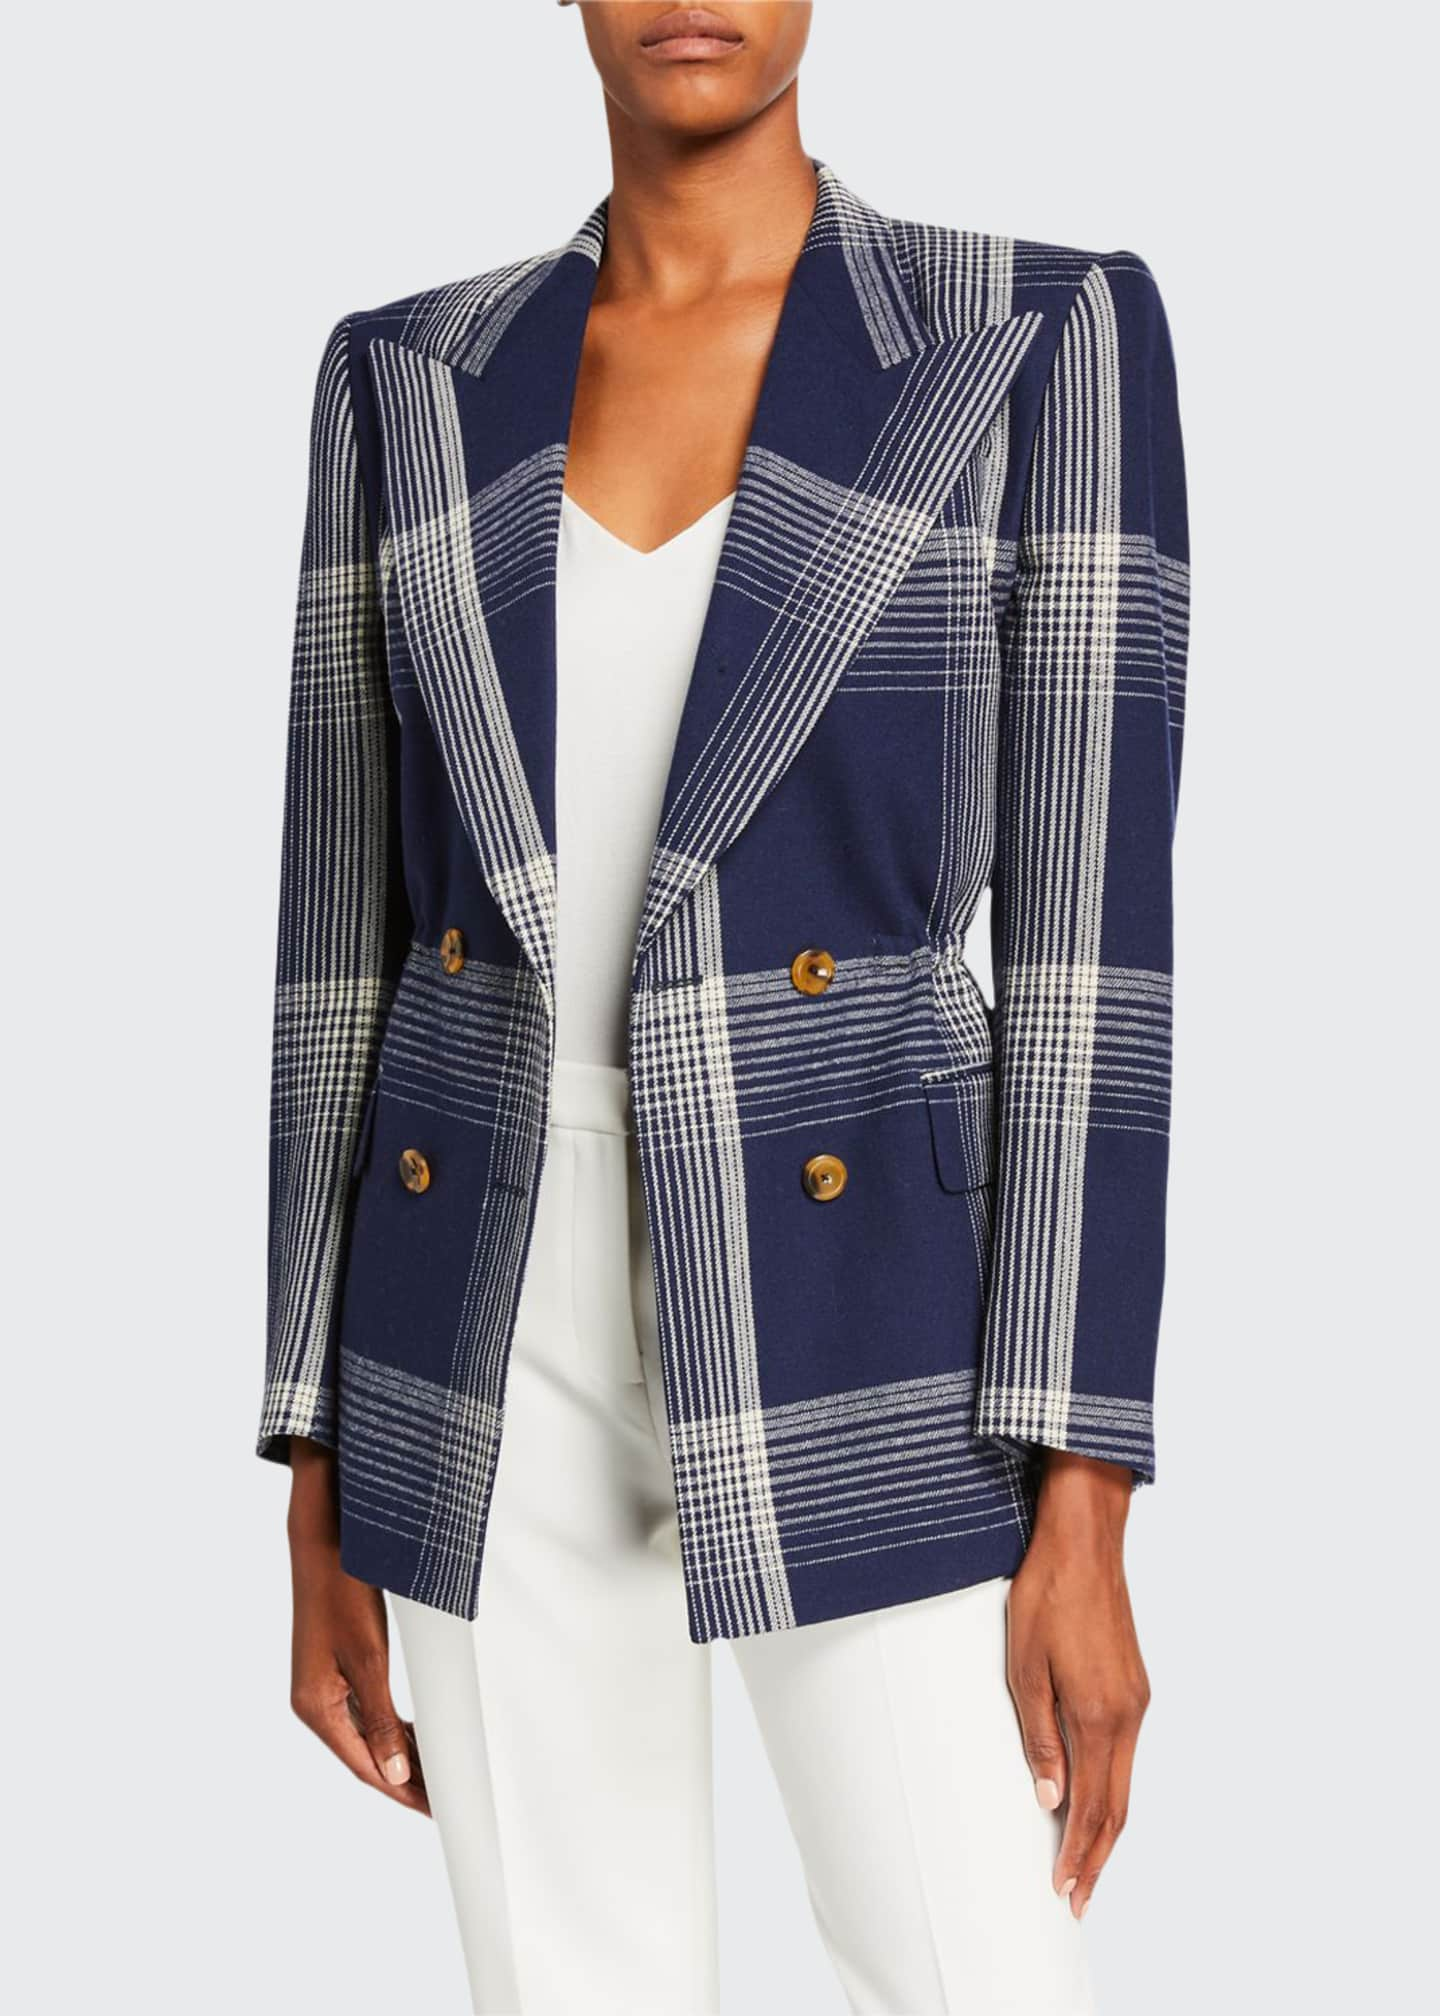 Gucci Checked Wool Cinched-Waist Jacket